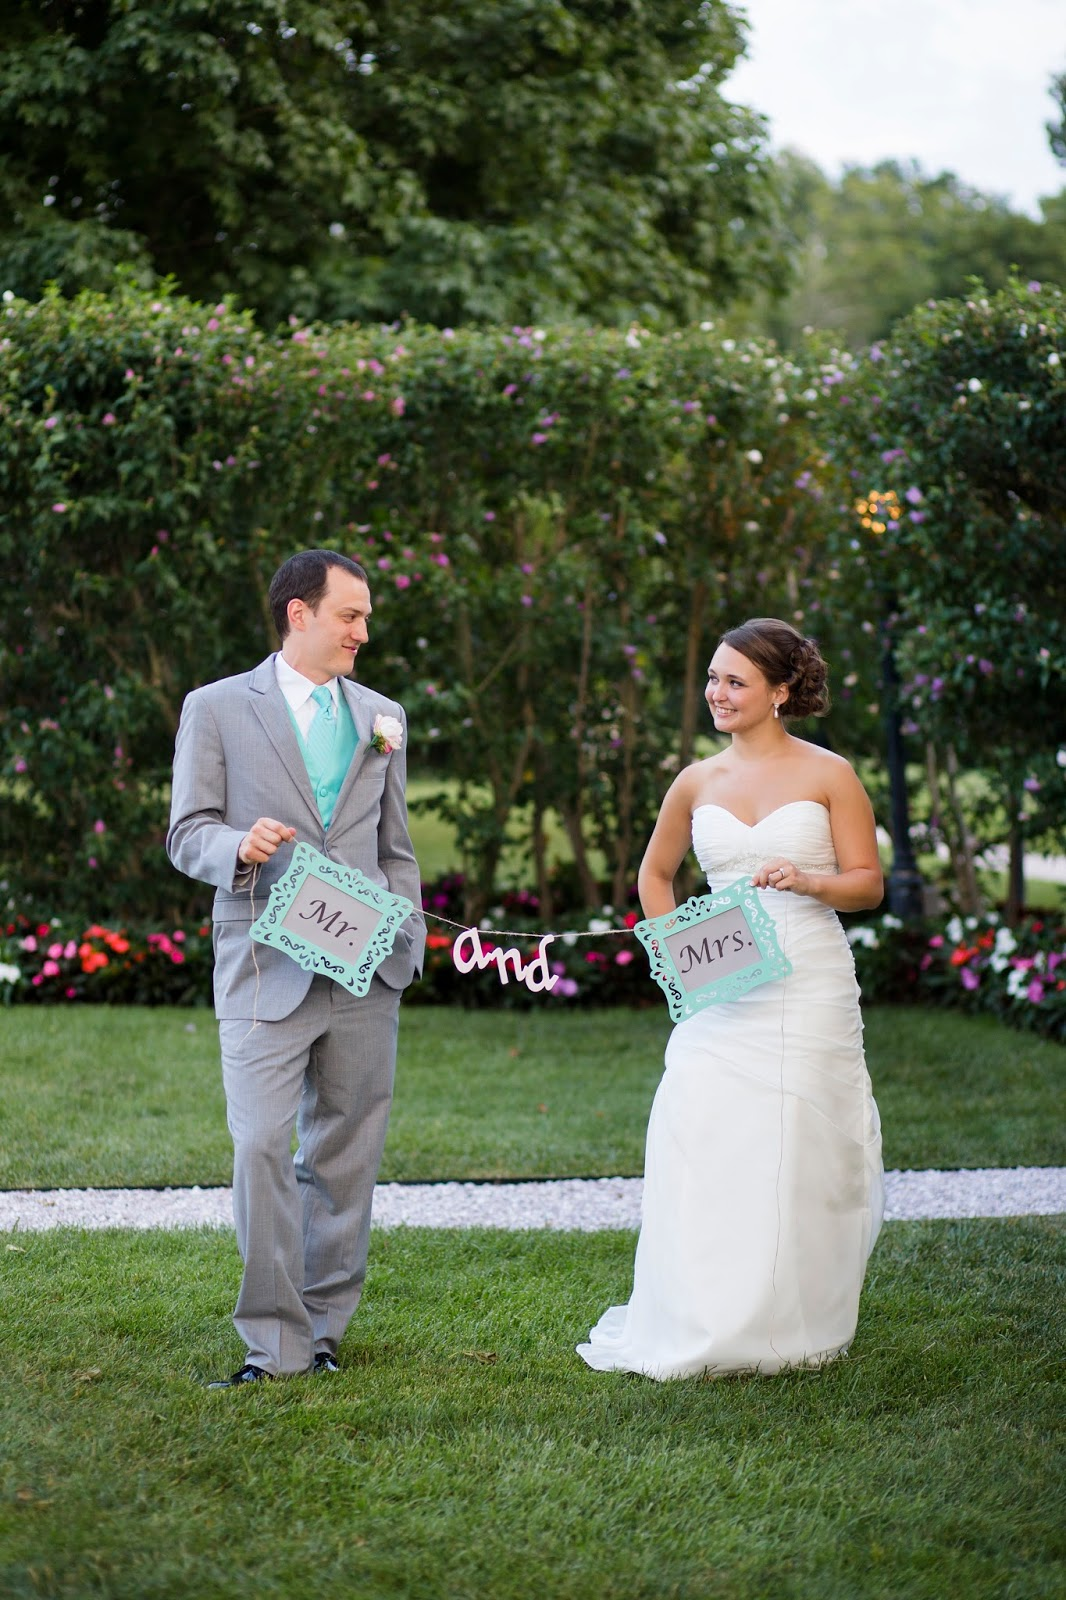 Wedding Wednesday- Mr. & Mrs. banner